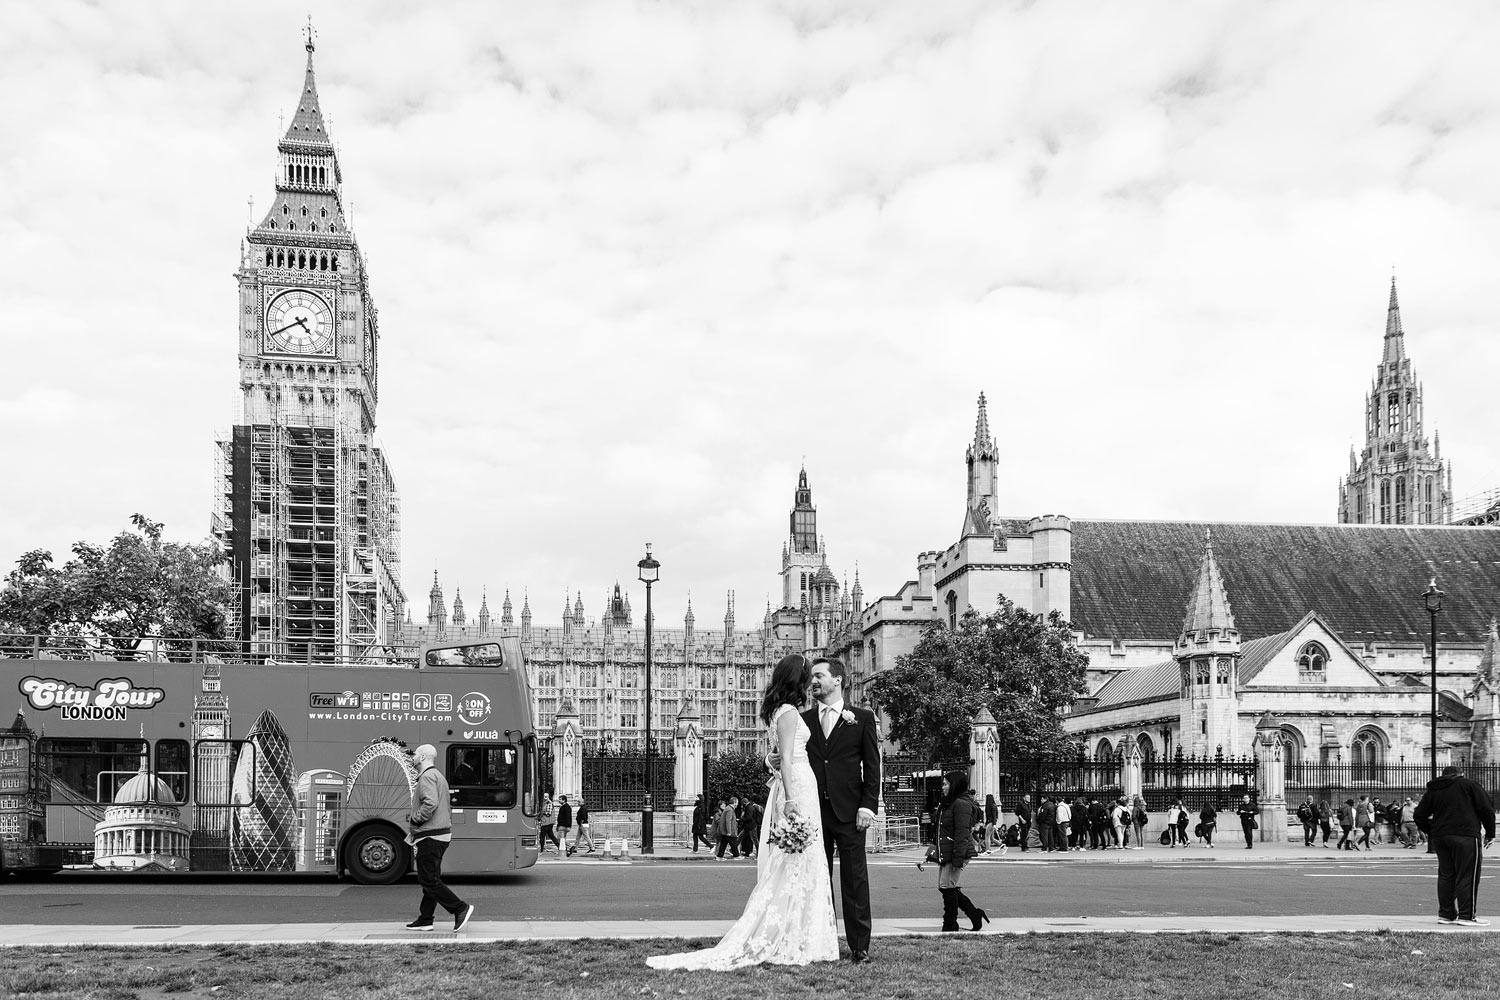 Kate and James at their wedding at the House of Commons - London wedding photographer